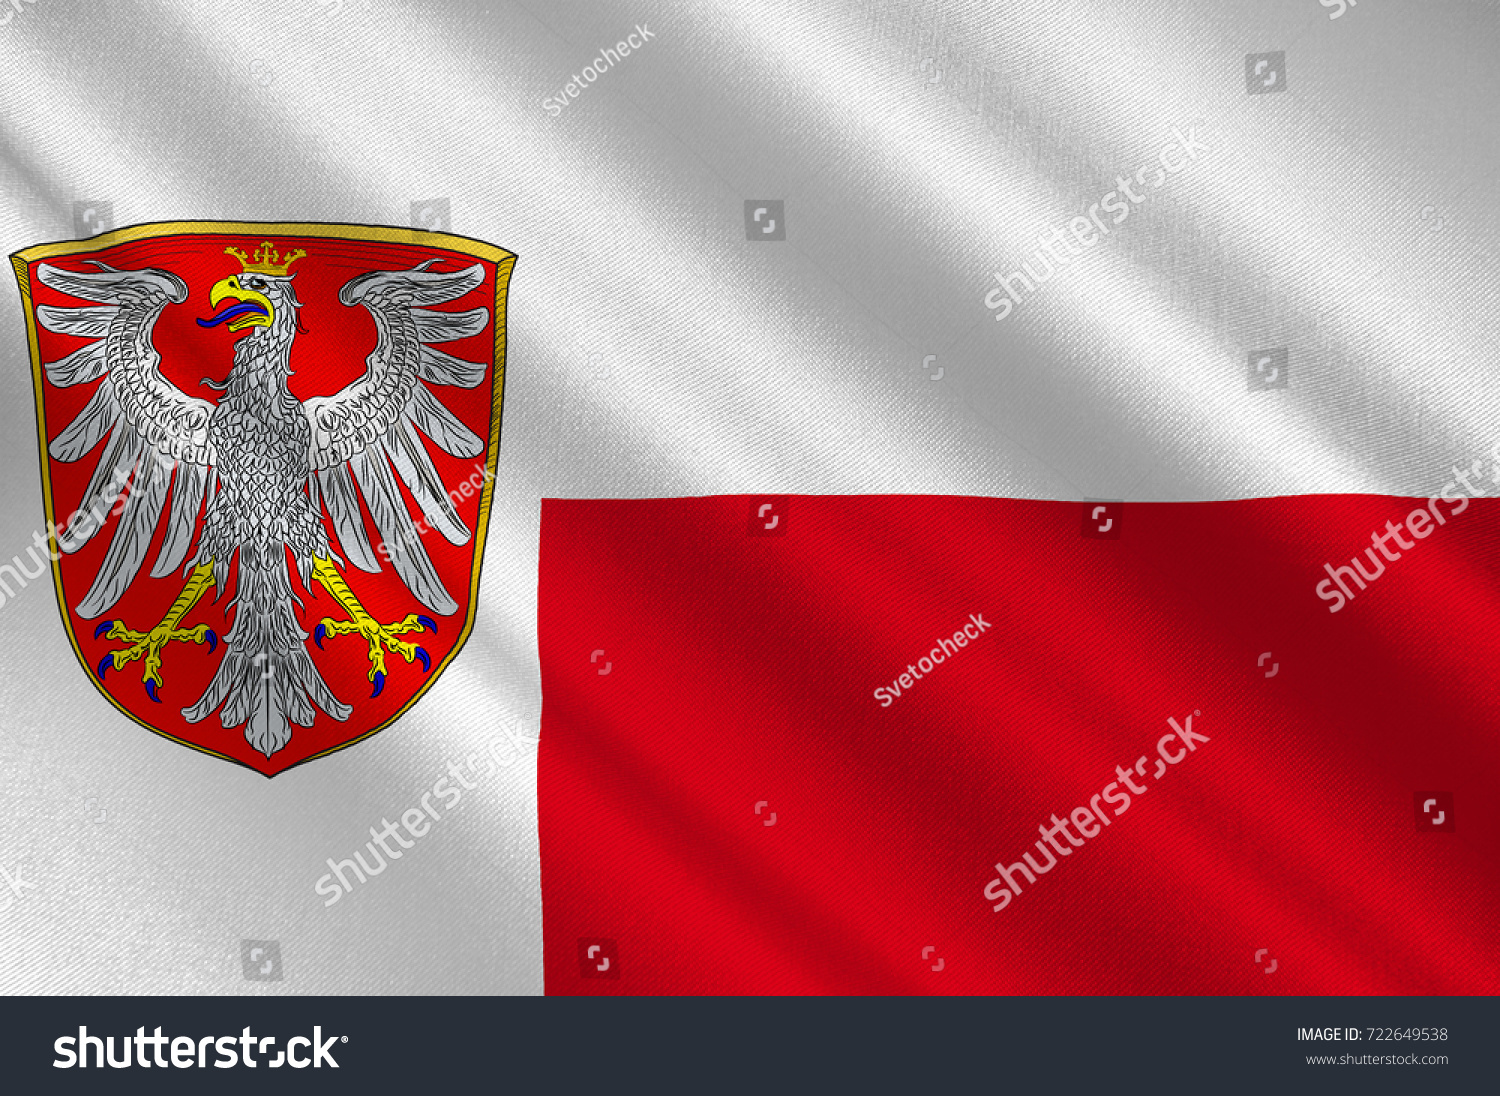 flag frankfurt main metropolis largest city stock illustration 722649538 shutterstock. Black Bedroom Furniture Sets. Home Design Ideas